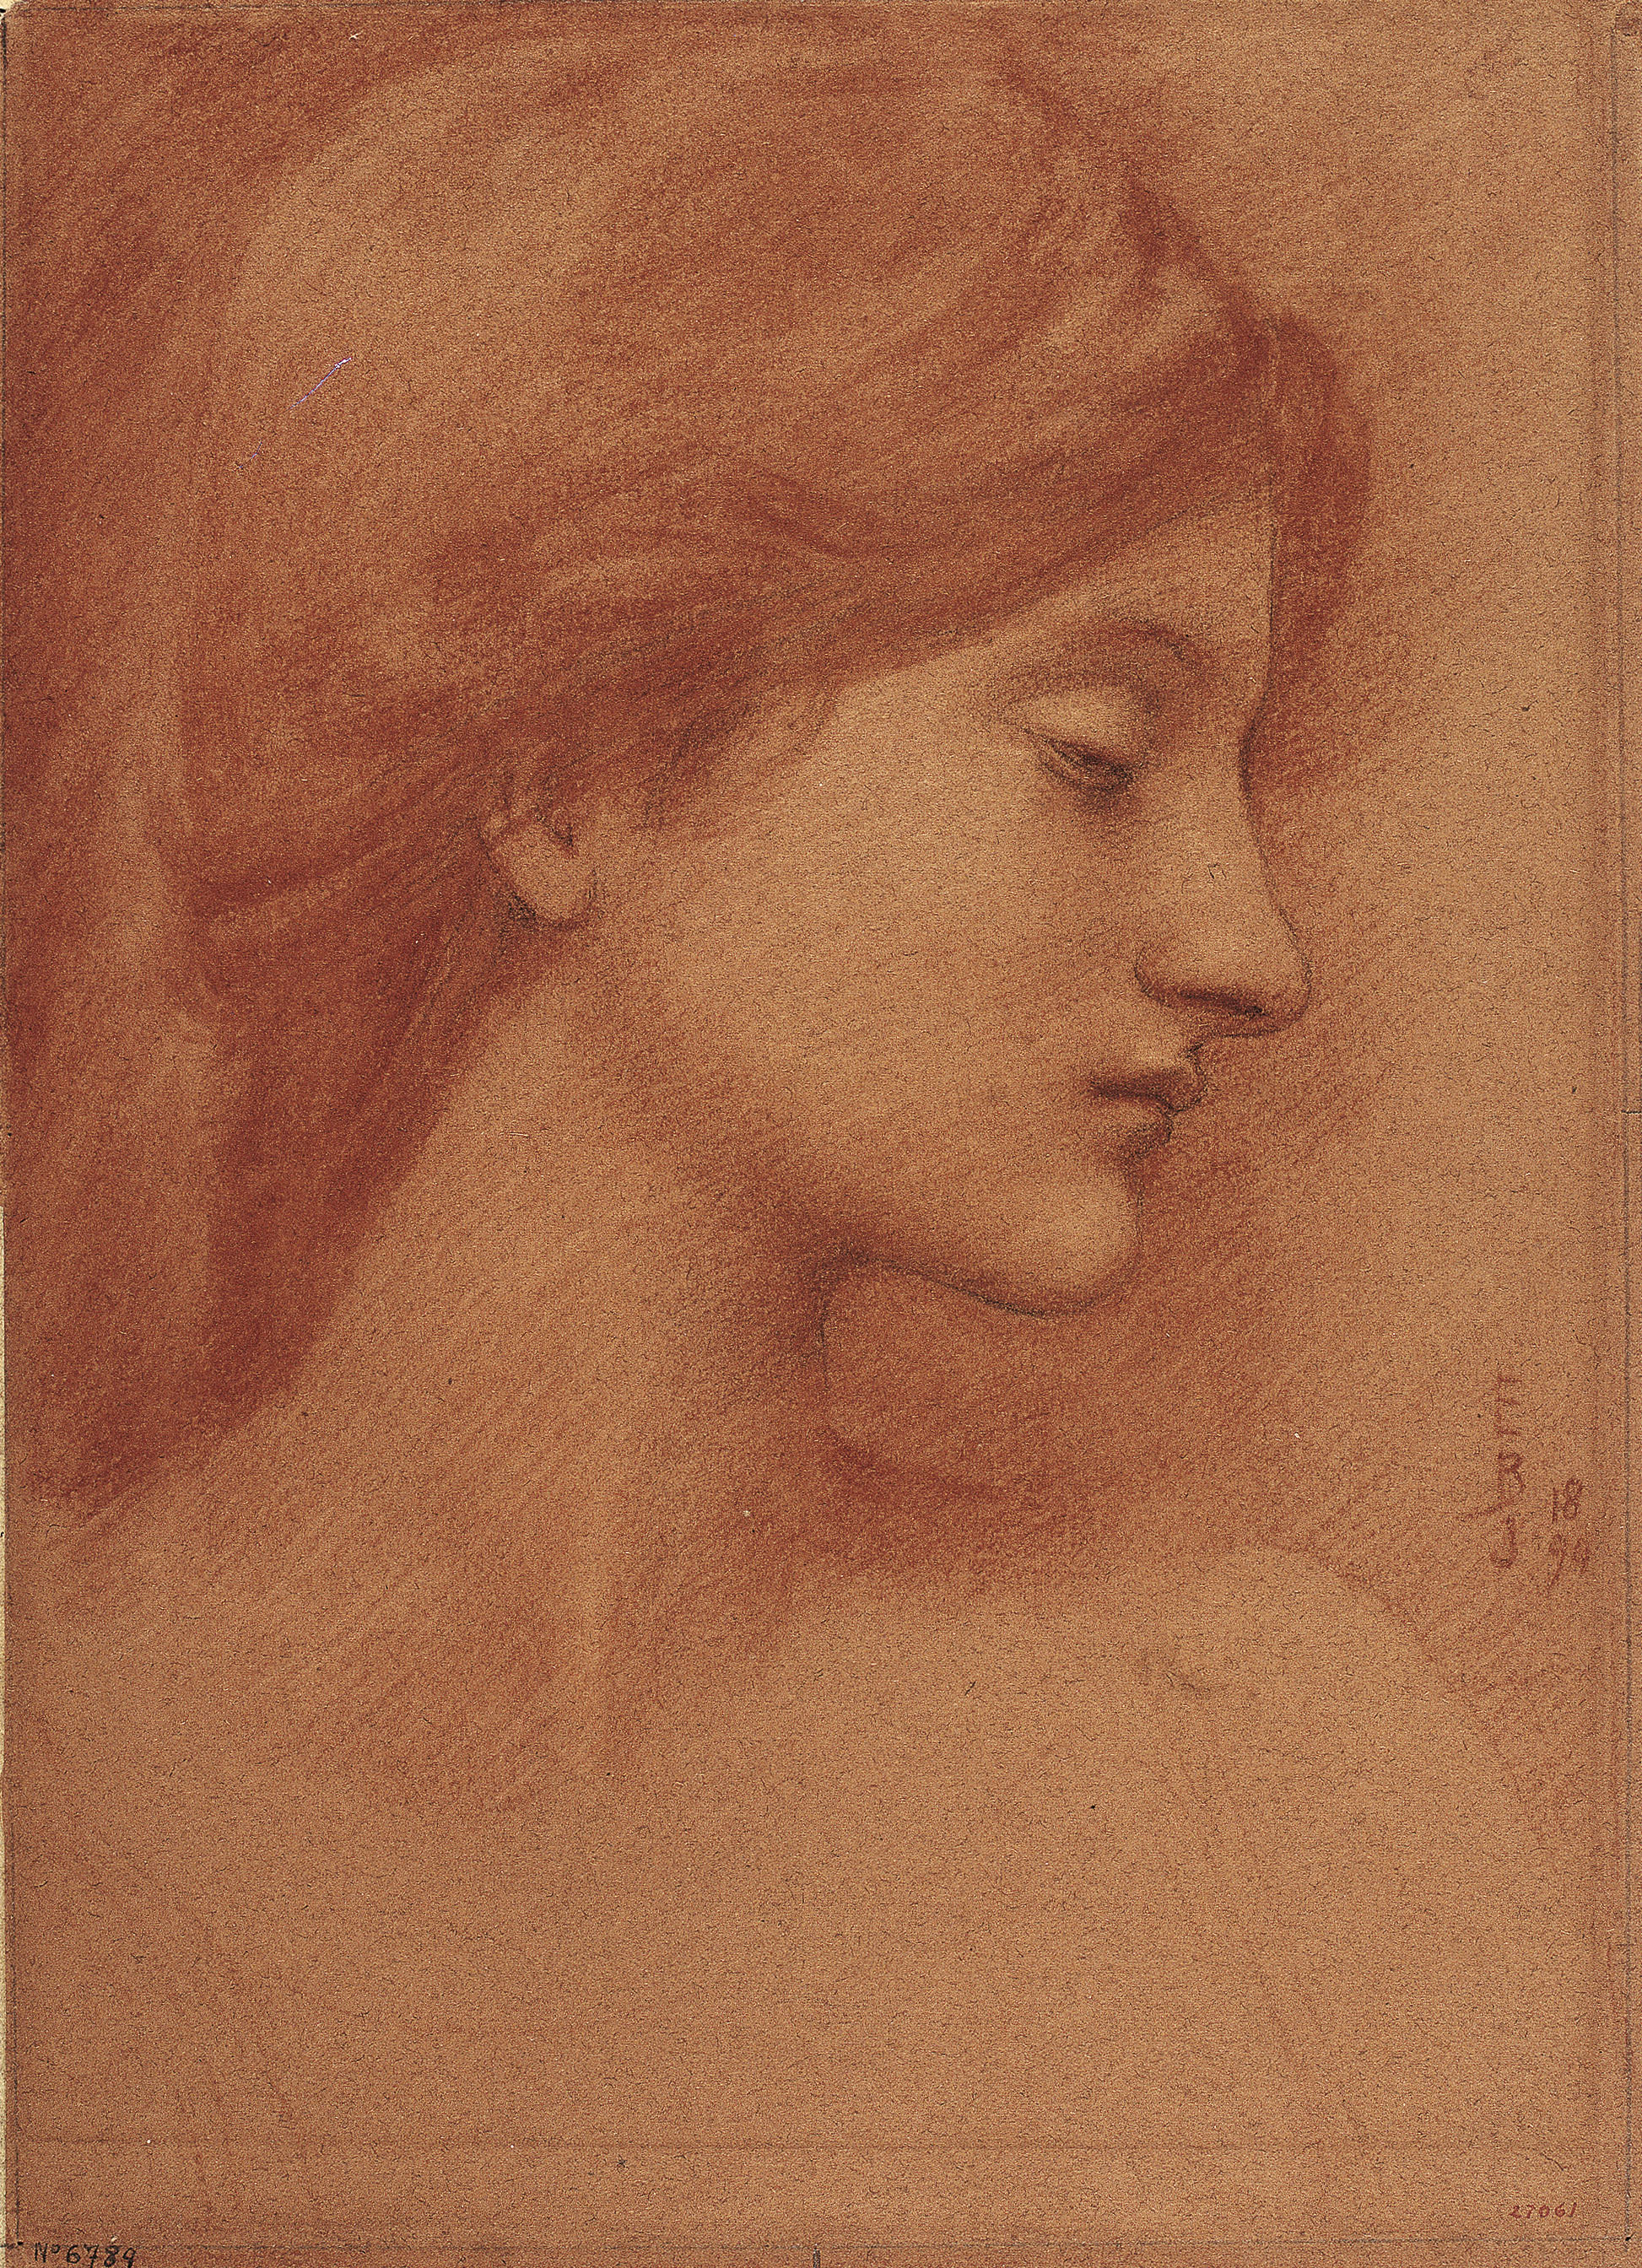 Edward Burne-Jones, Study of a Female Head, 1894